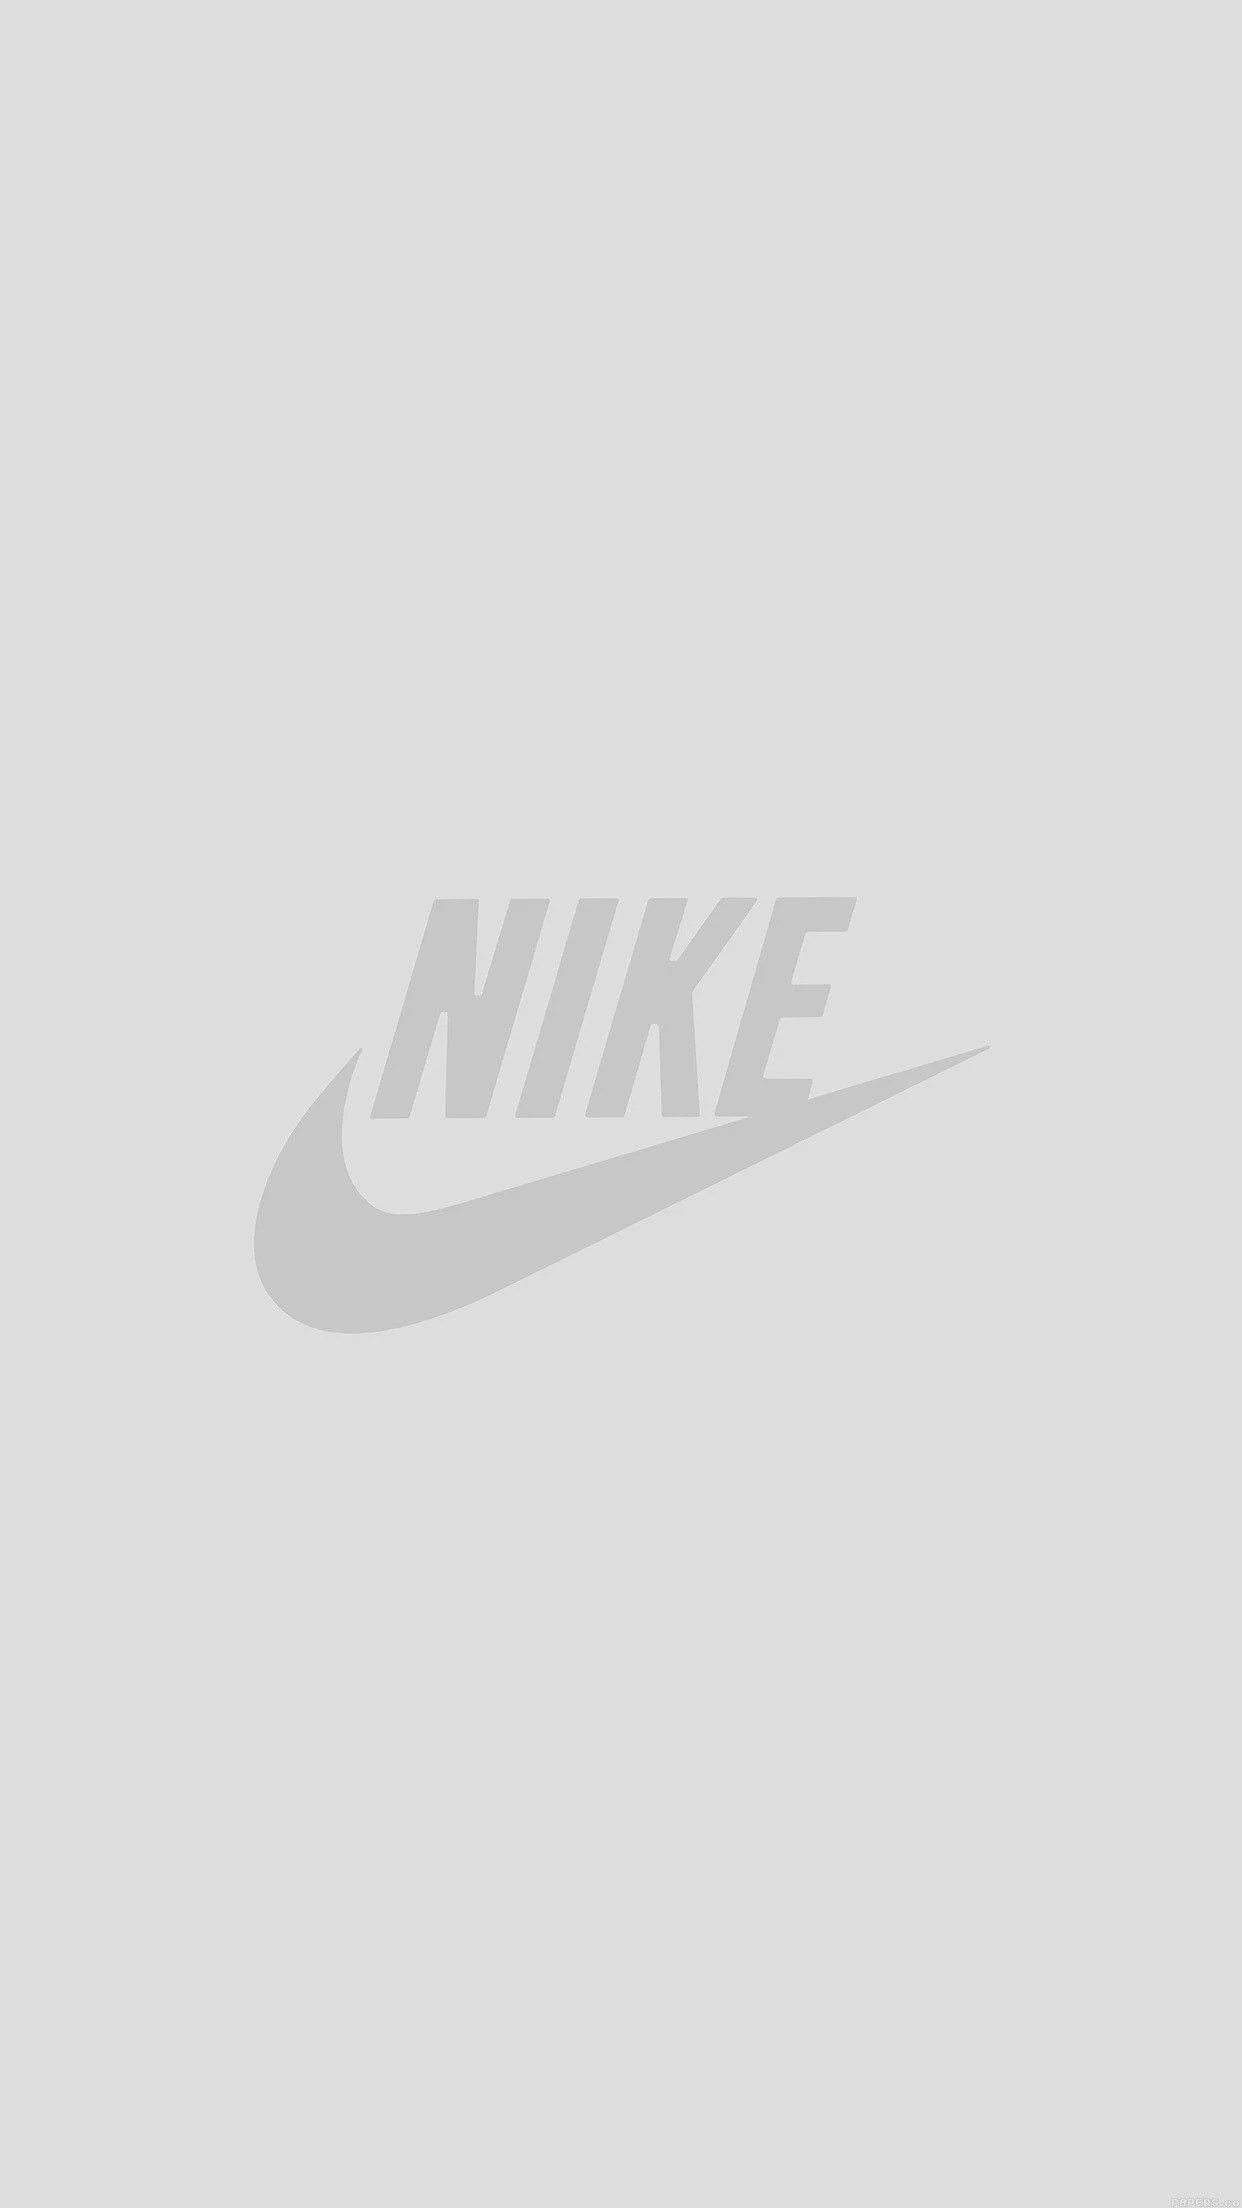 Nike White Wallpaper : white, wallpaper, Simple, Wallpapers, Backgrounds, WallpaperAccess